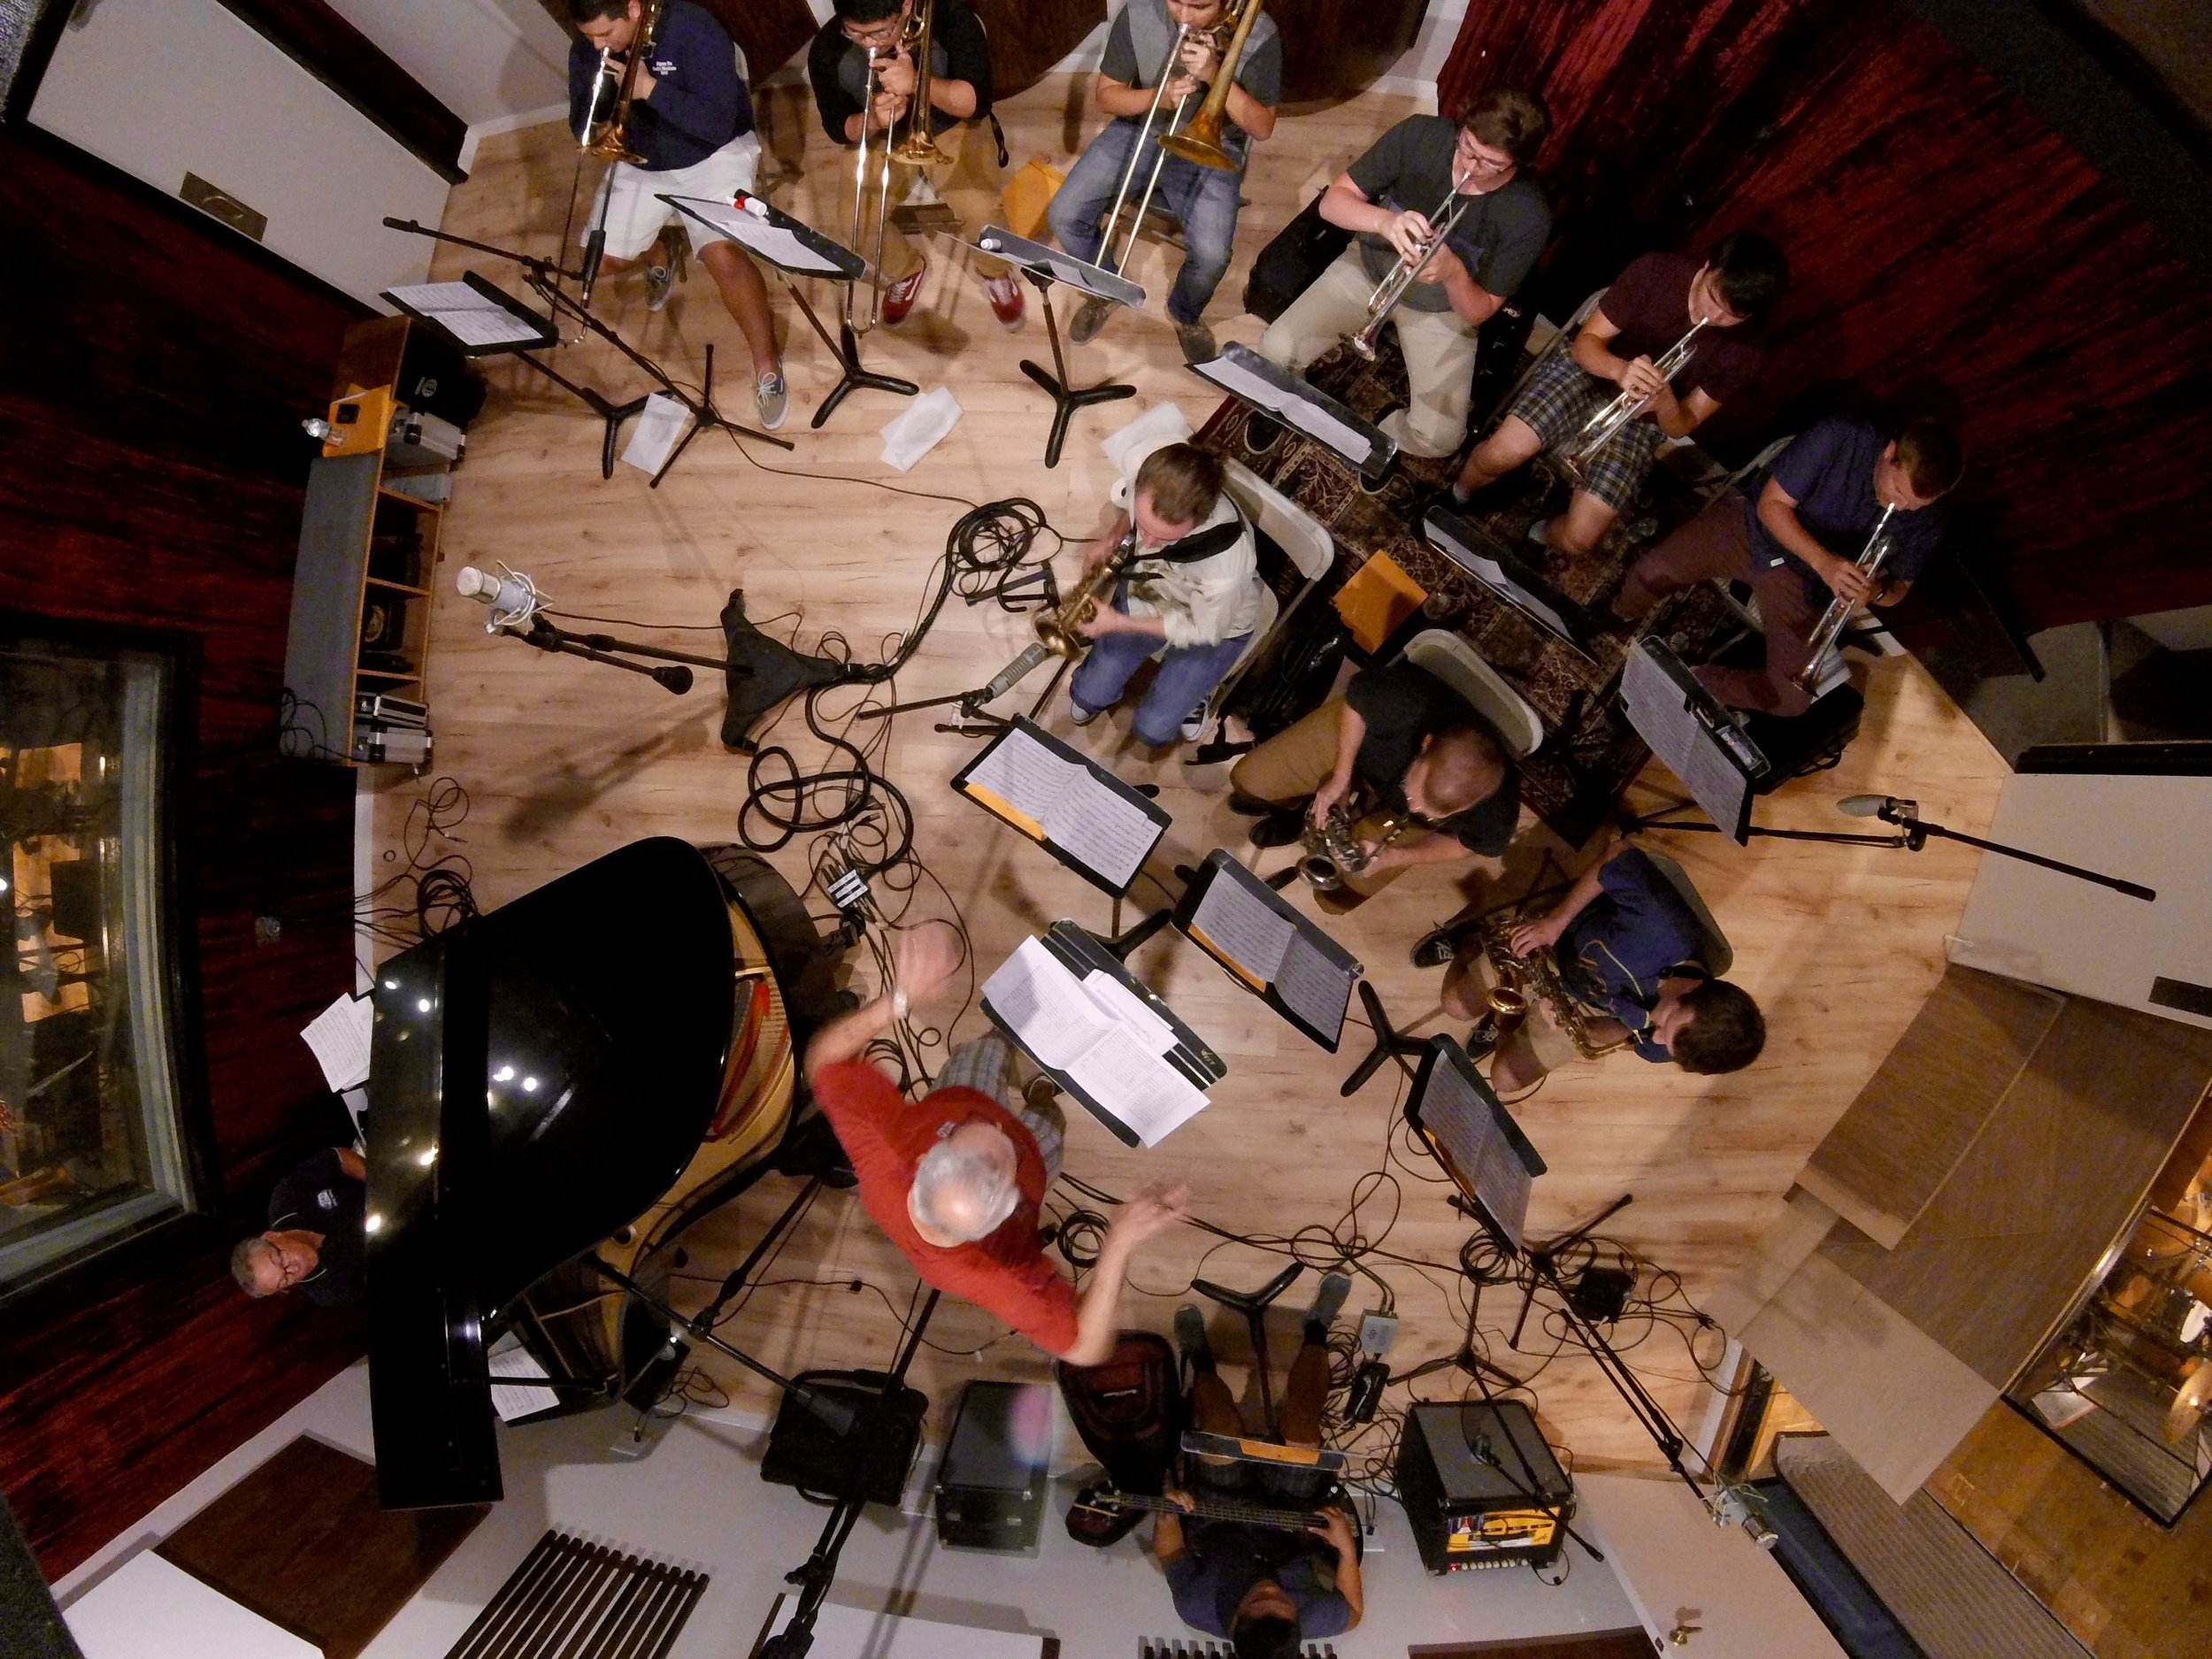 Honeytaps Big Band Recording Session (Photo by Chris Schlarb)